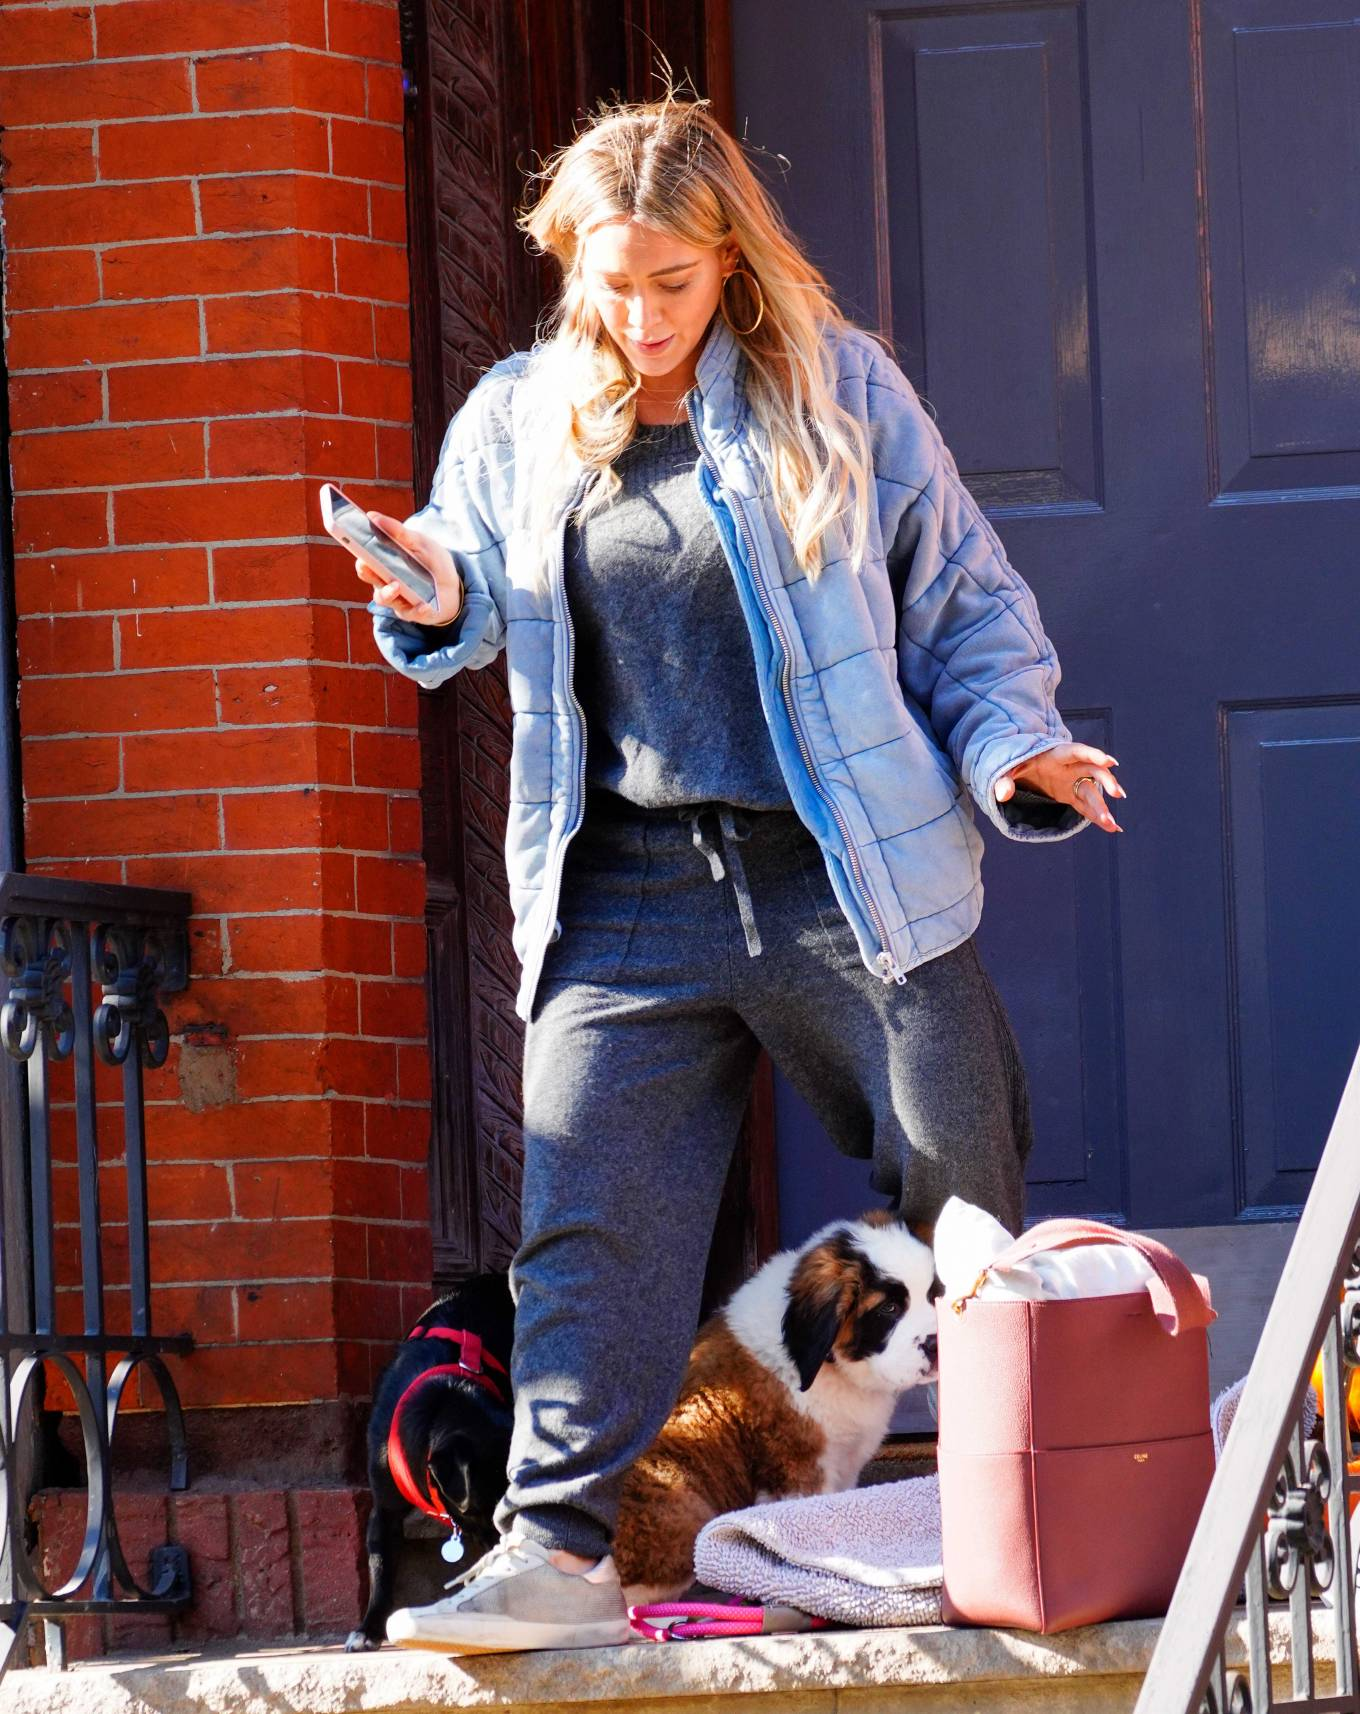 Hilary Duff 2020 : Hilary Duff – Out with her new puppy in NYC-08